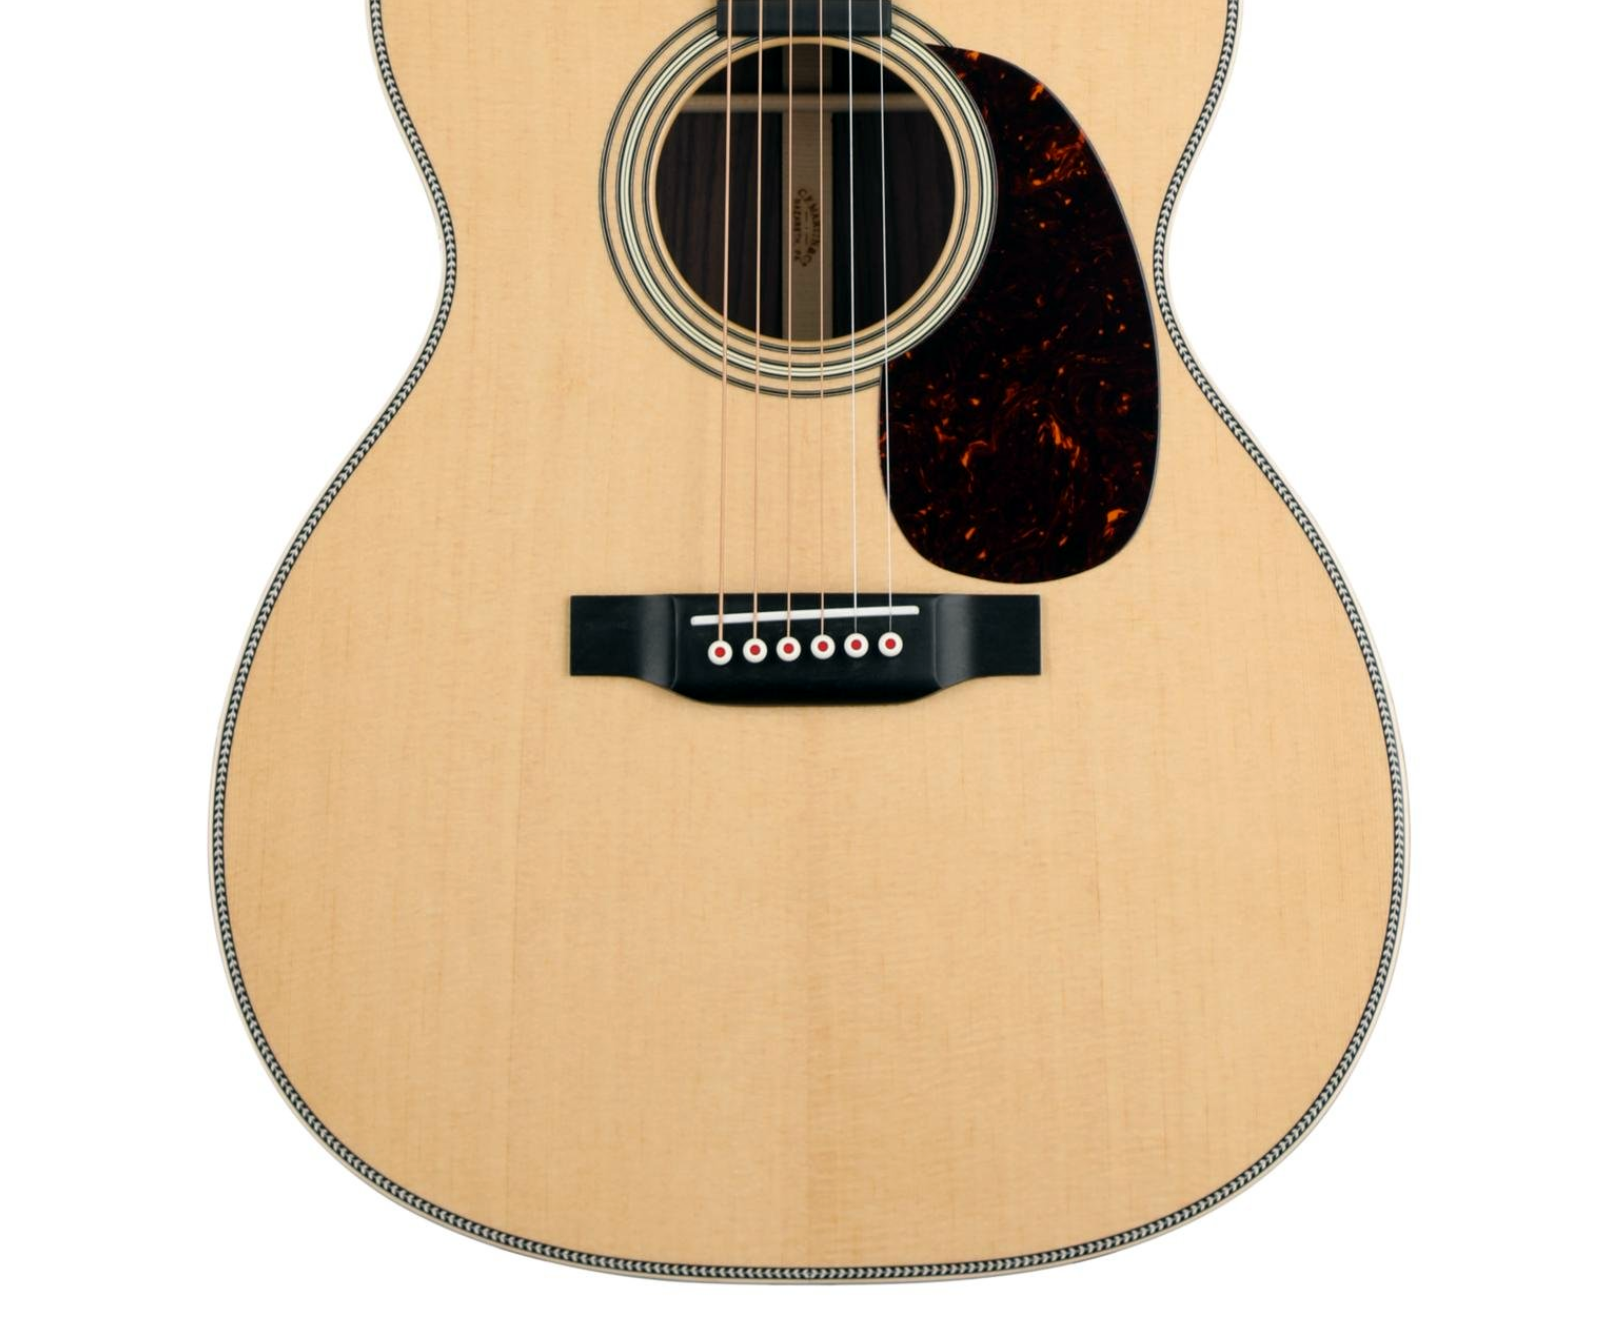 Martin 000-28 Modern Deluxe lower bout